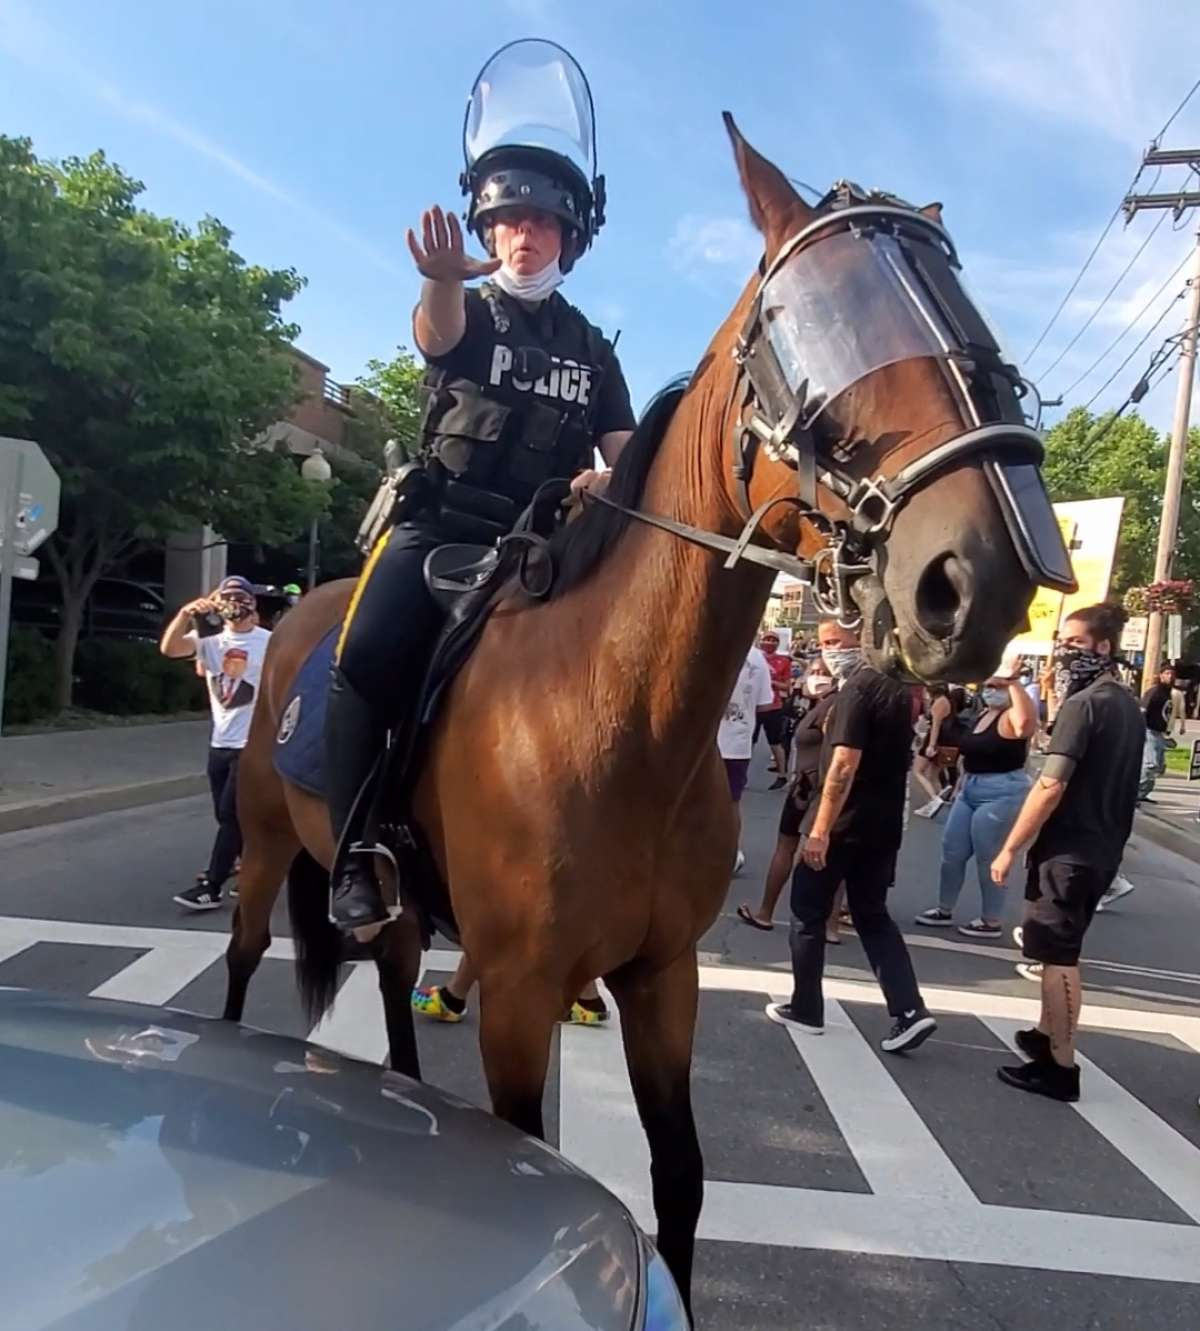 Protester Keni Zoeli took this photo of a Saratoga Springs police officer and horse during the march, which looped down Maple Avenue from Broadway.